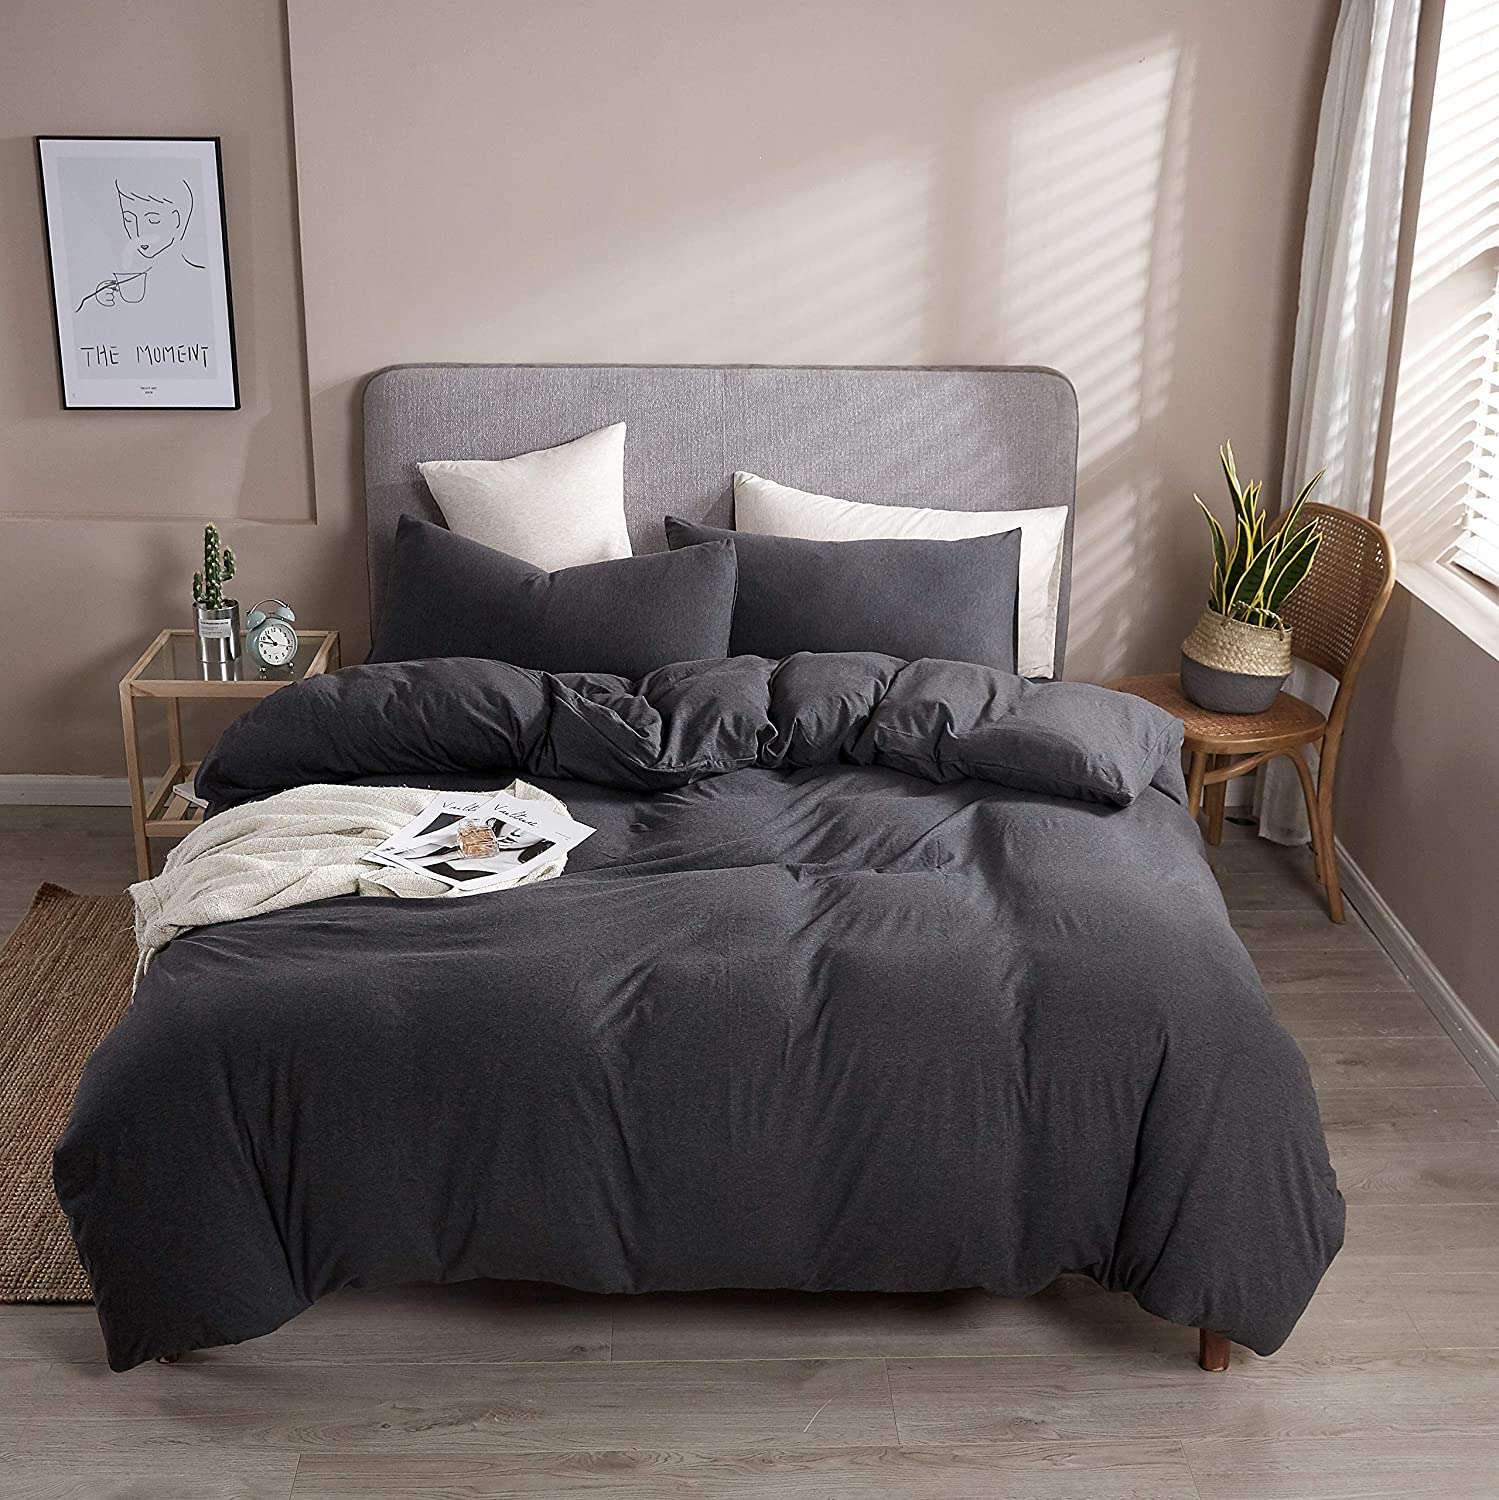 Household 3-Piece Duvet 1 year warranty Cover King Knit Cotton Super popular specialty store Jersey Duve 100%